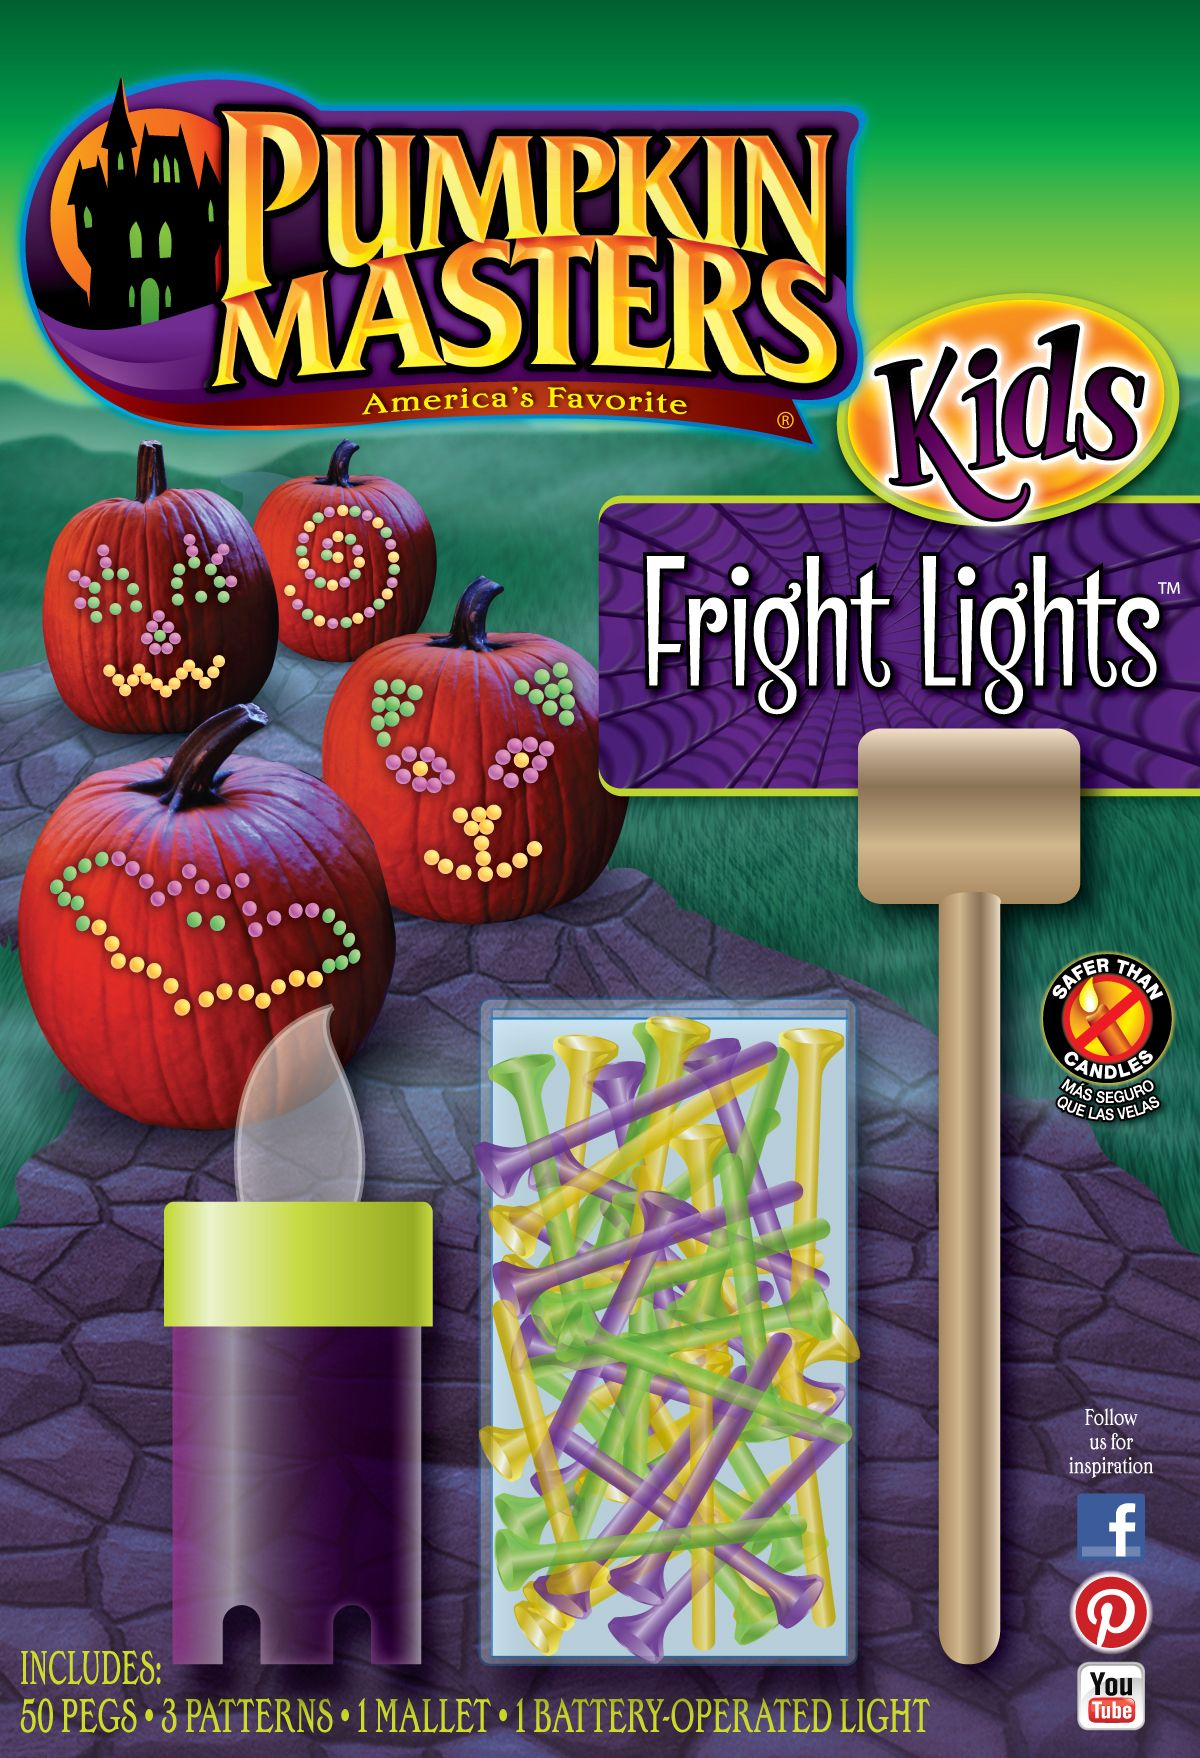 Pumpkin masters kids fright lights is the perfect alternative to